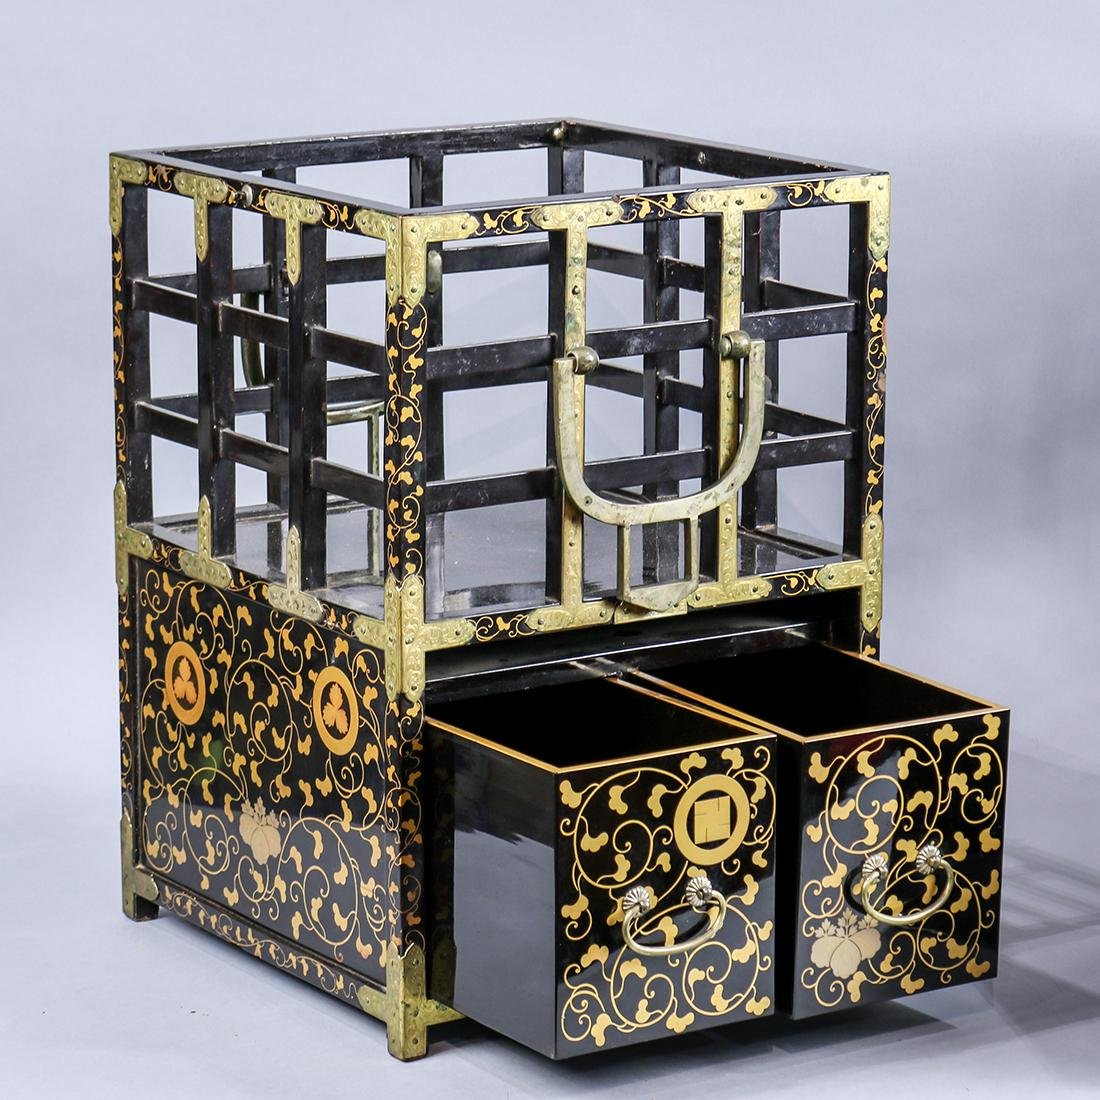 Japanese Black Lacquered Portable Tables/Chests - 2